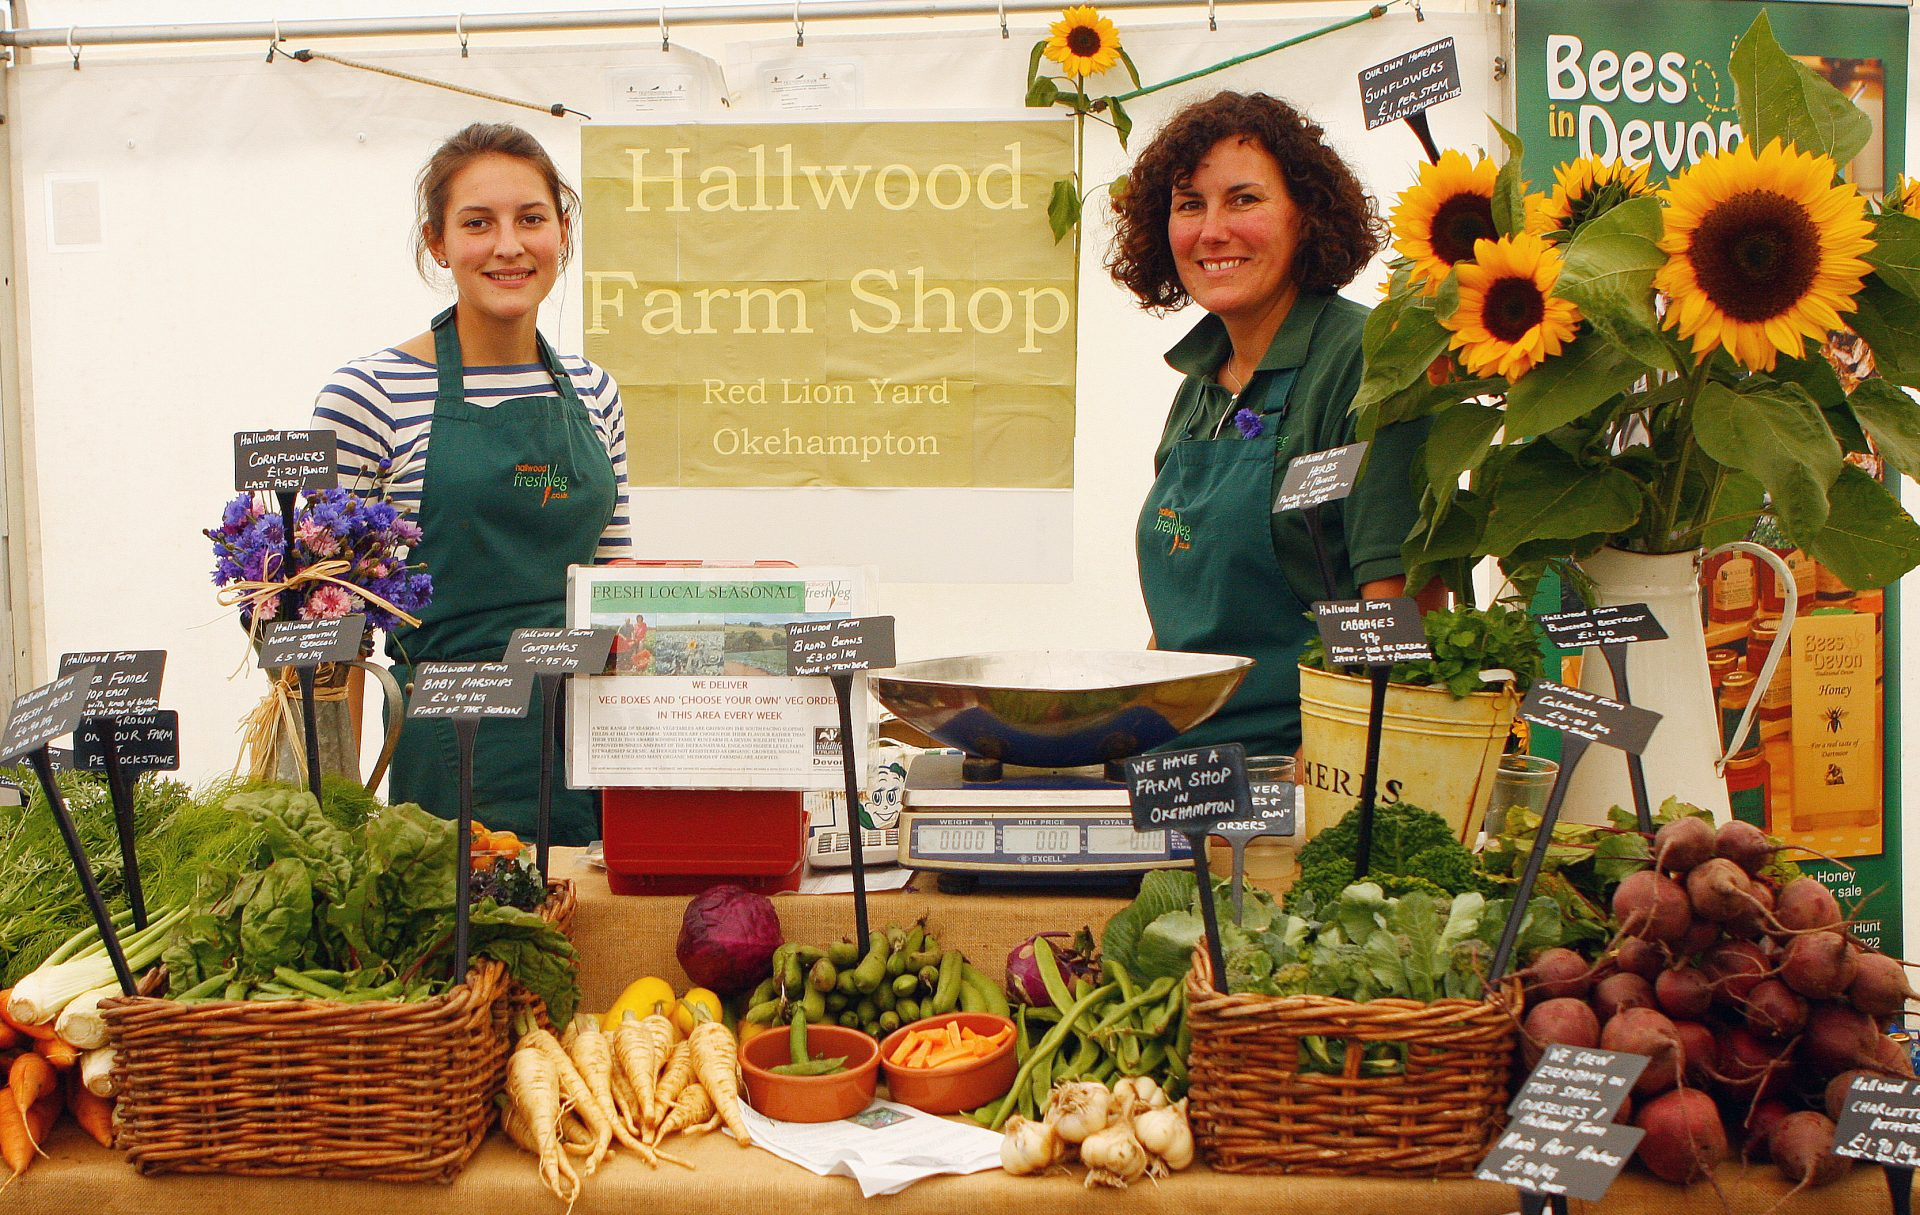 Stall holders at the Chagford Show.